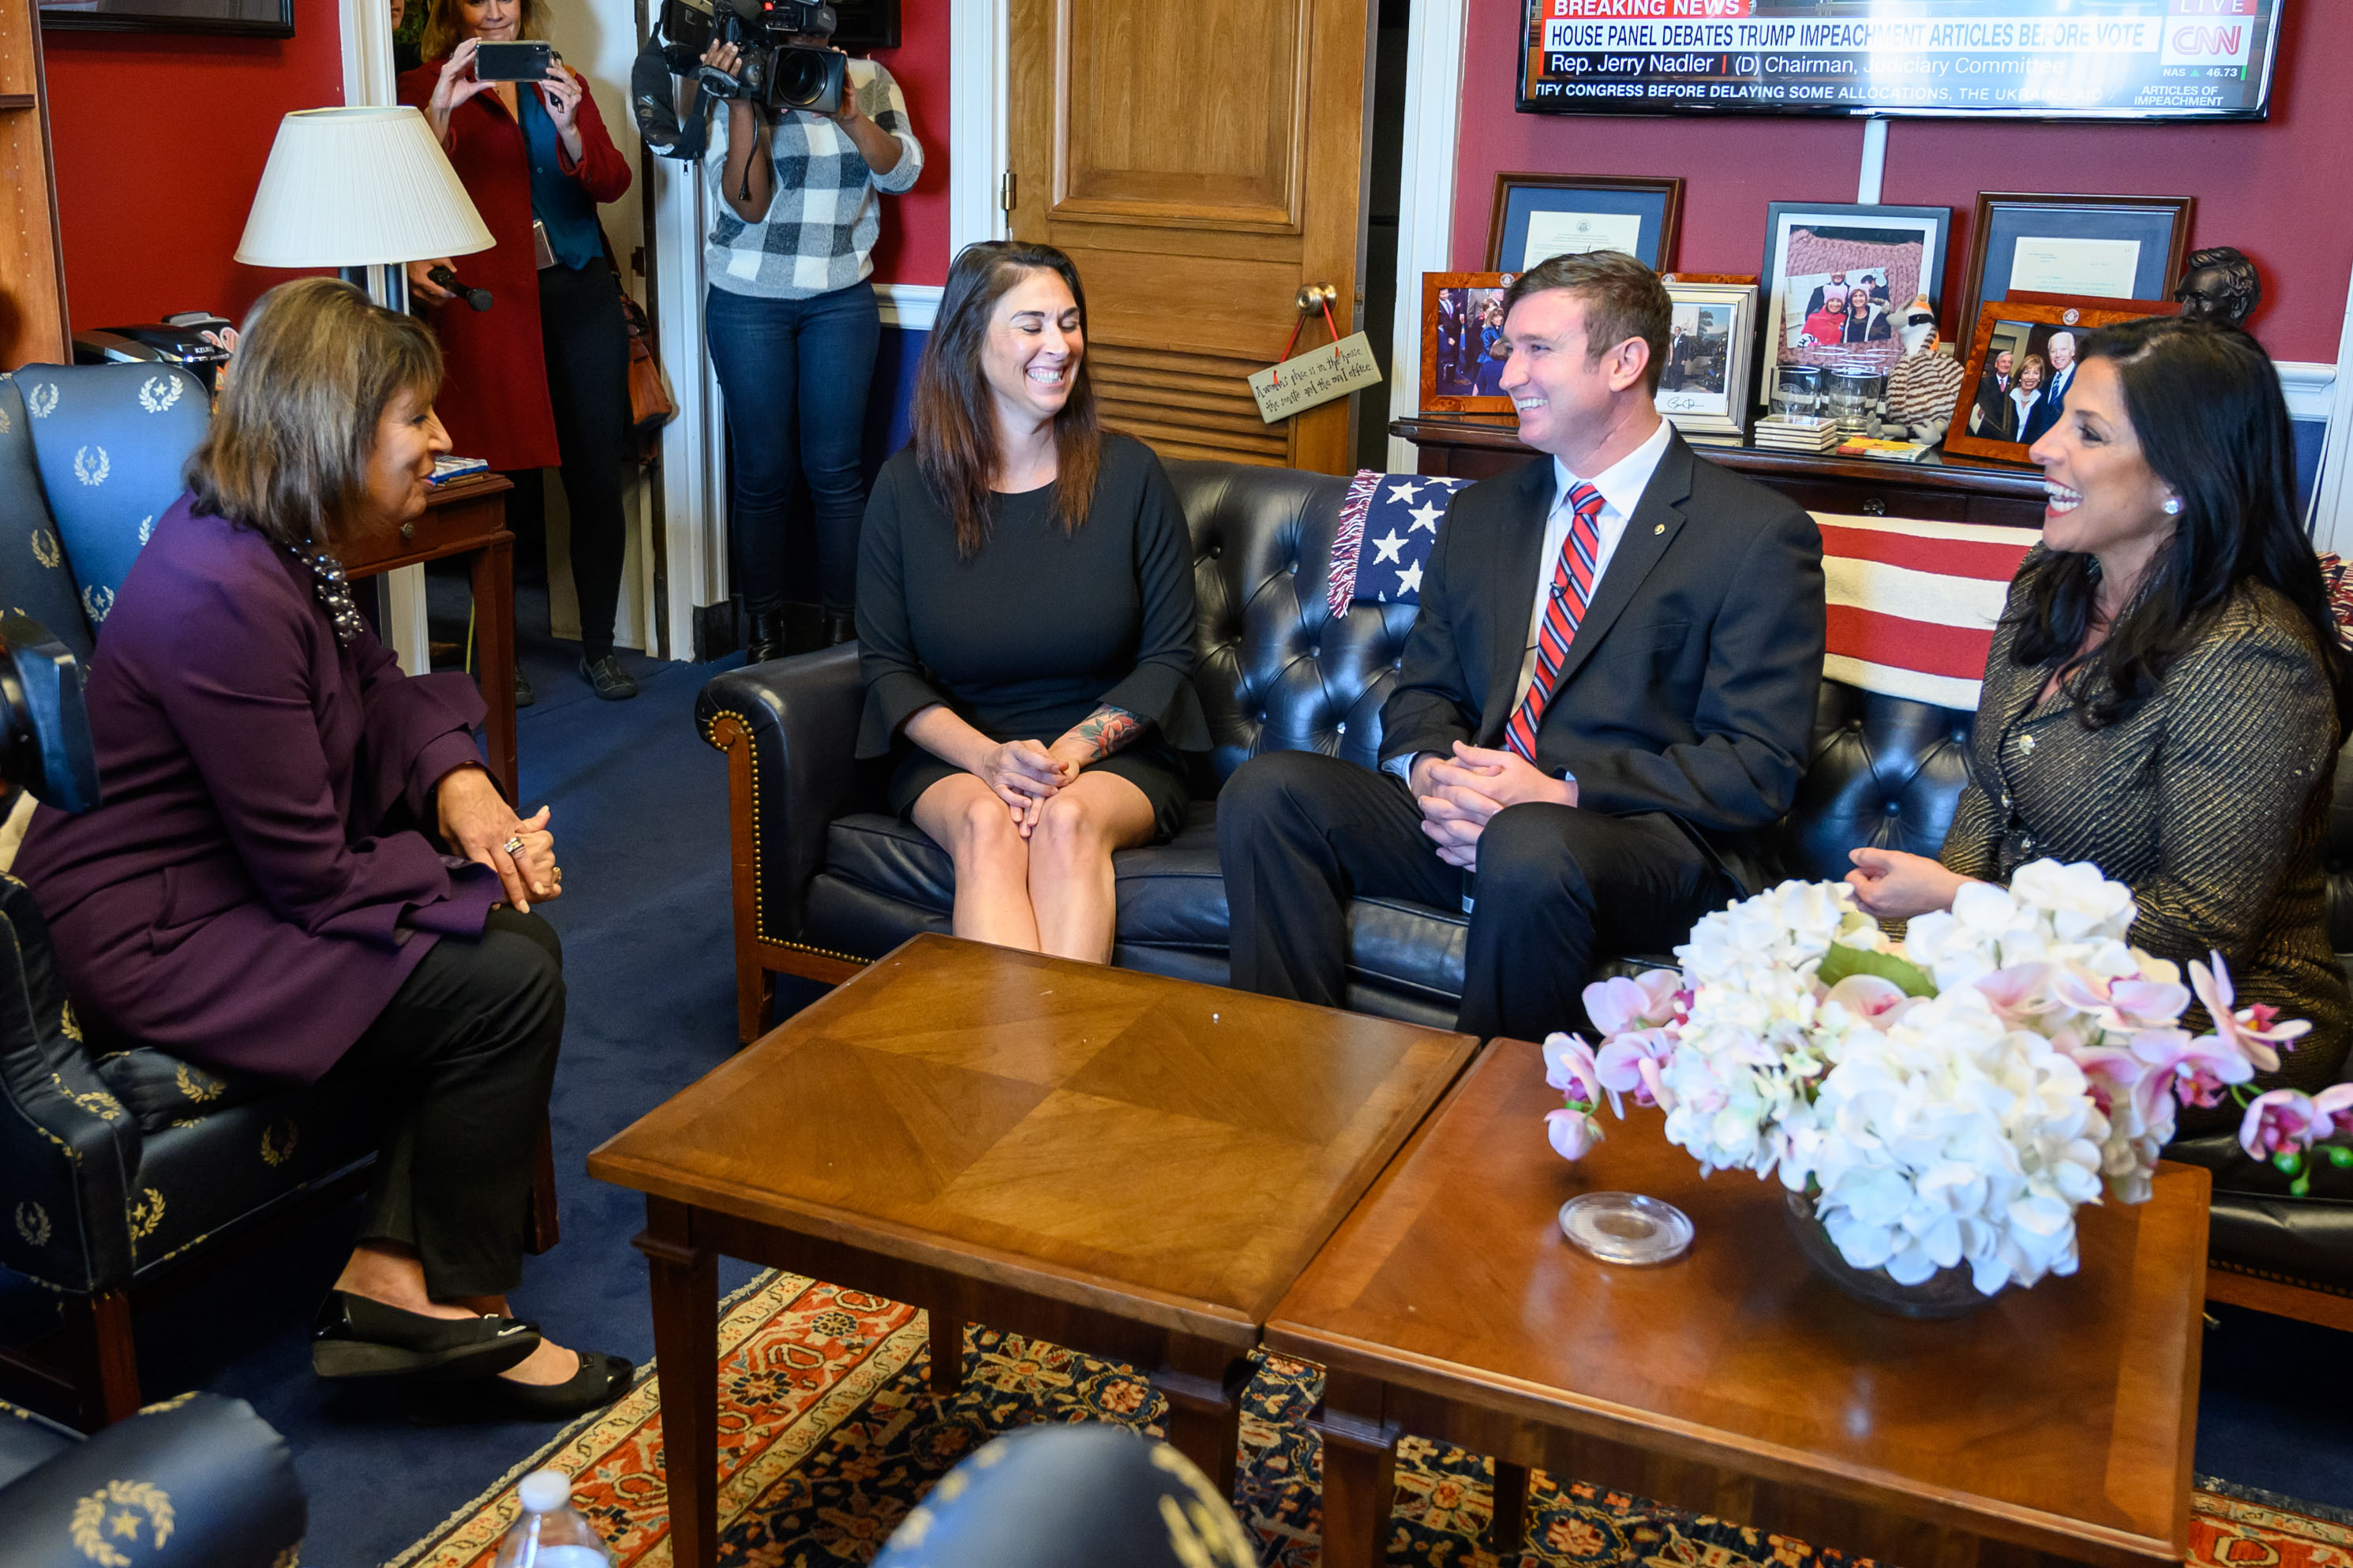 Caption: Congresswoman Jackie Speier, left, meets with Army Sergeant Richard Stayskal, center, his wife, Megan, and his attorney, Natalie Khawam, in Speier's Washington office before an April 2019 subcommittee hearing on the Feres Doctrine., Credit: U.S. House of Representatives